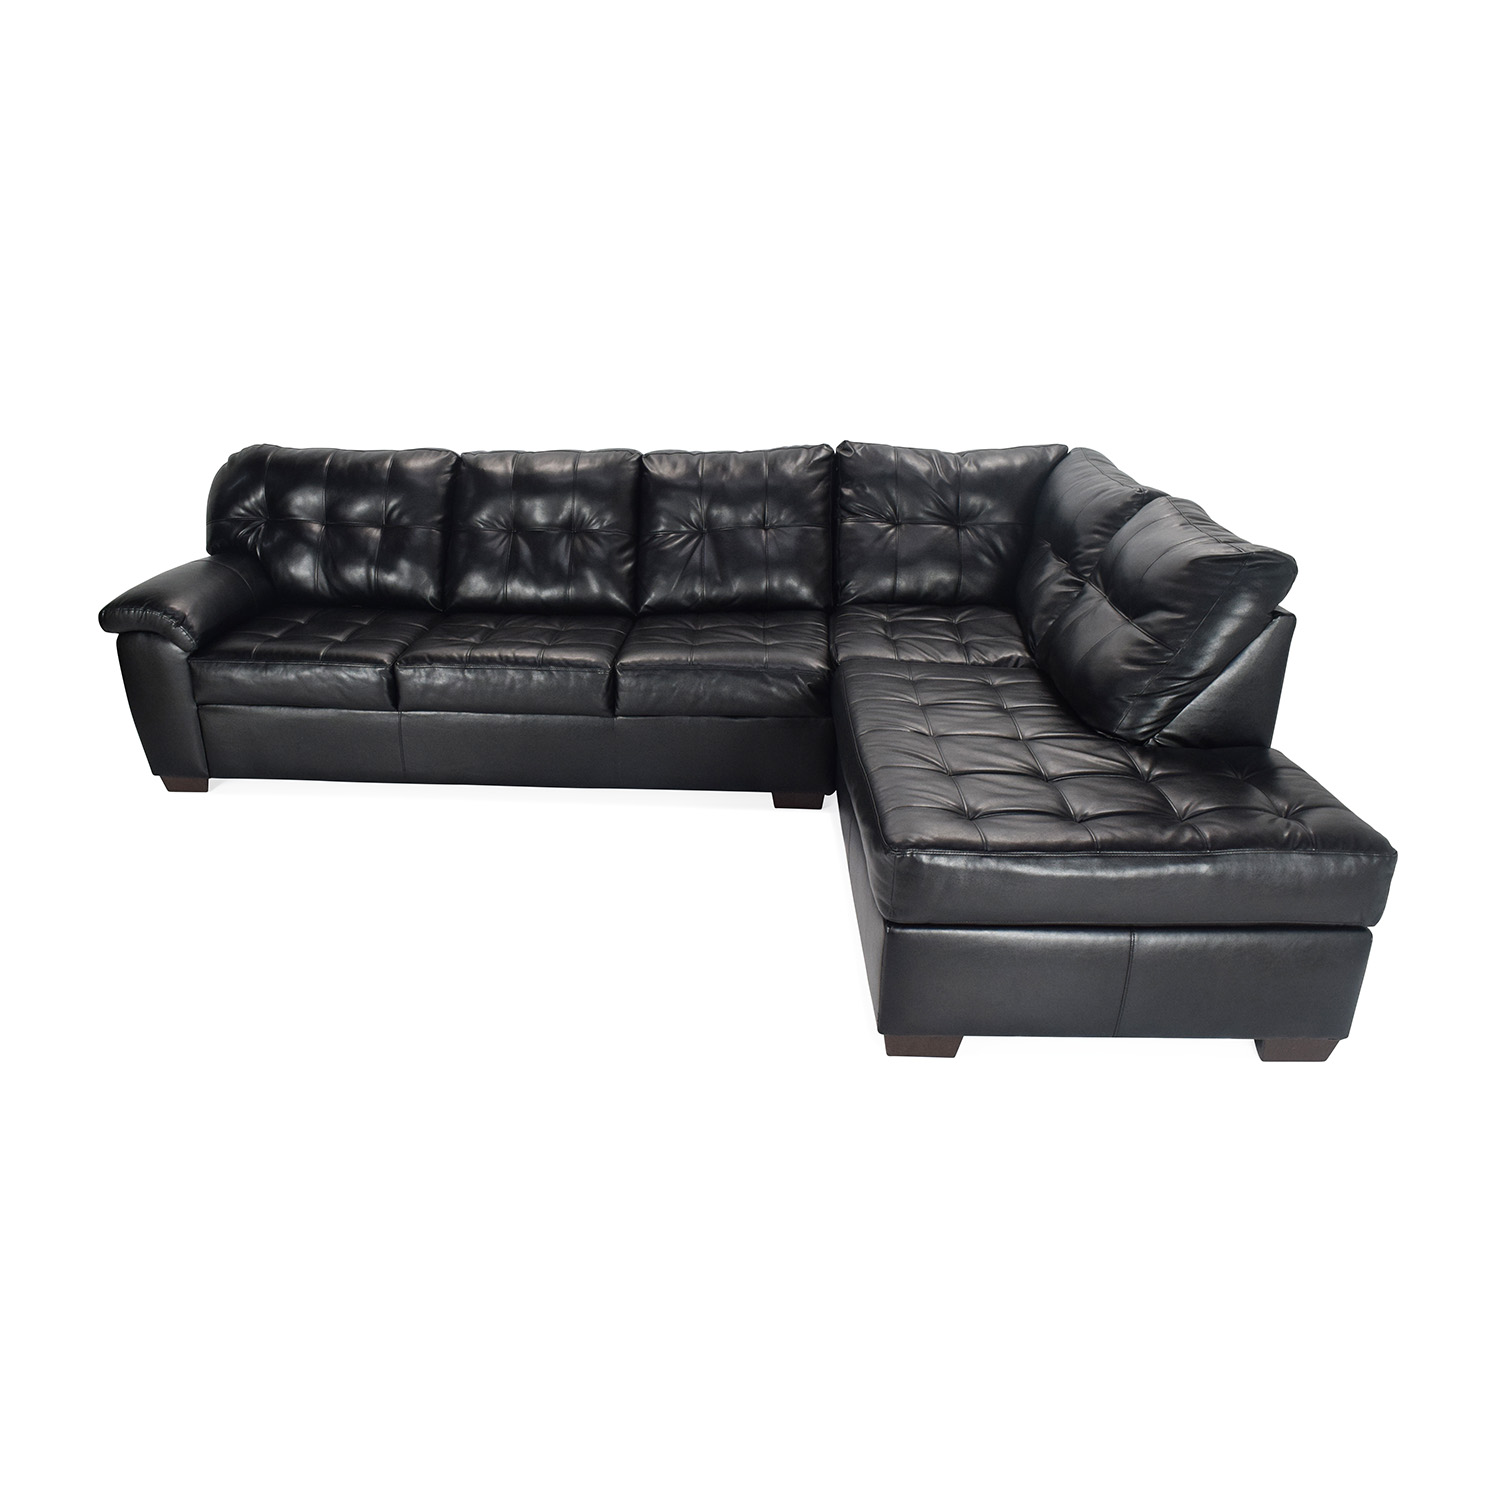 Awe Inspiring 51 Off Bobs Discount Furniture Black Faux Leather Sectional Sofas Spiritservingveterans Wood Chair Design Ideas Spiritservingveteransorg